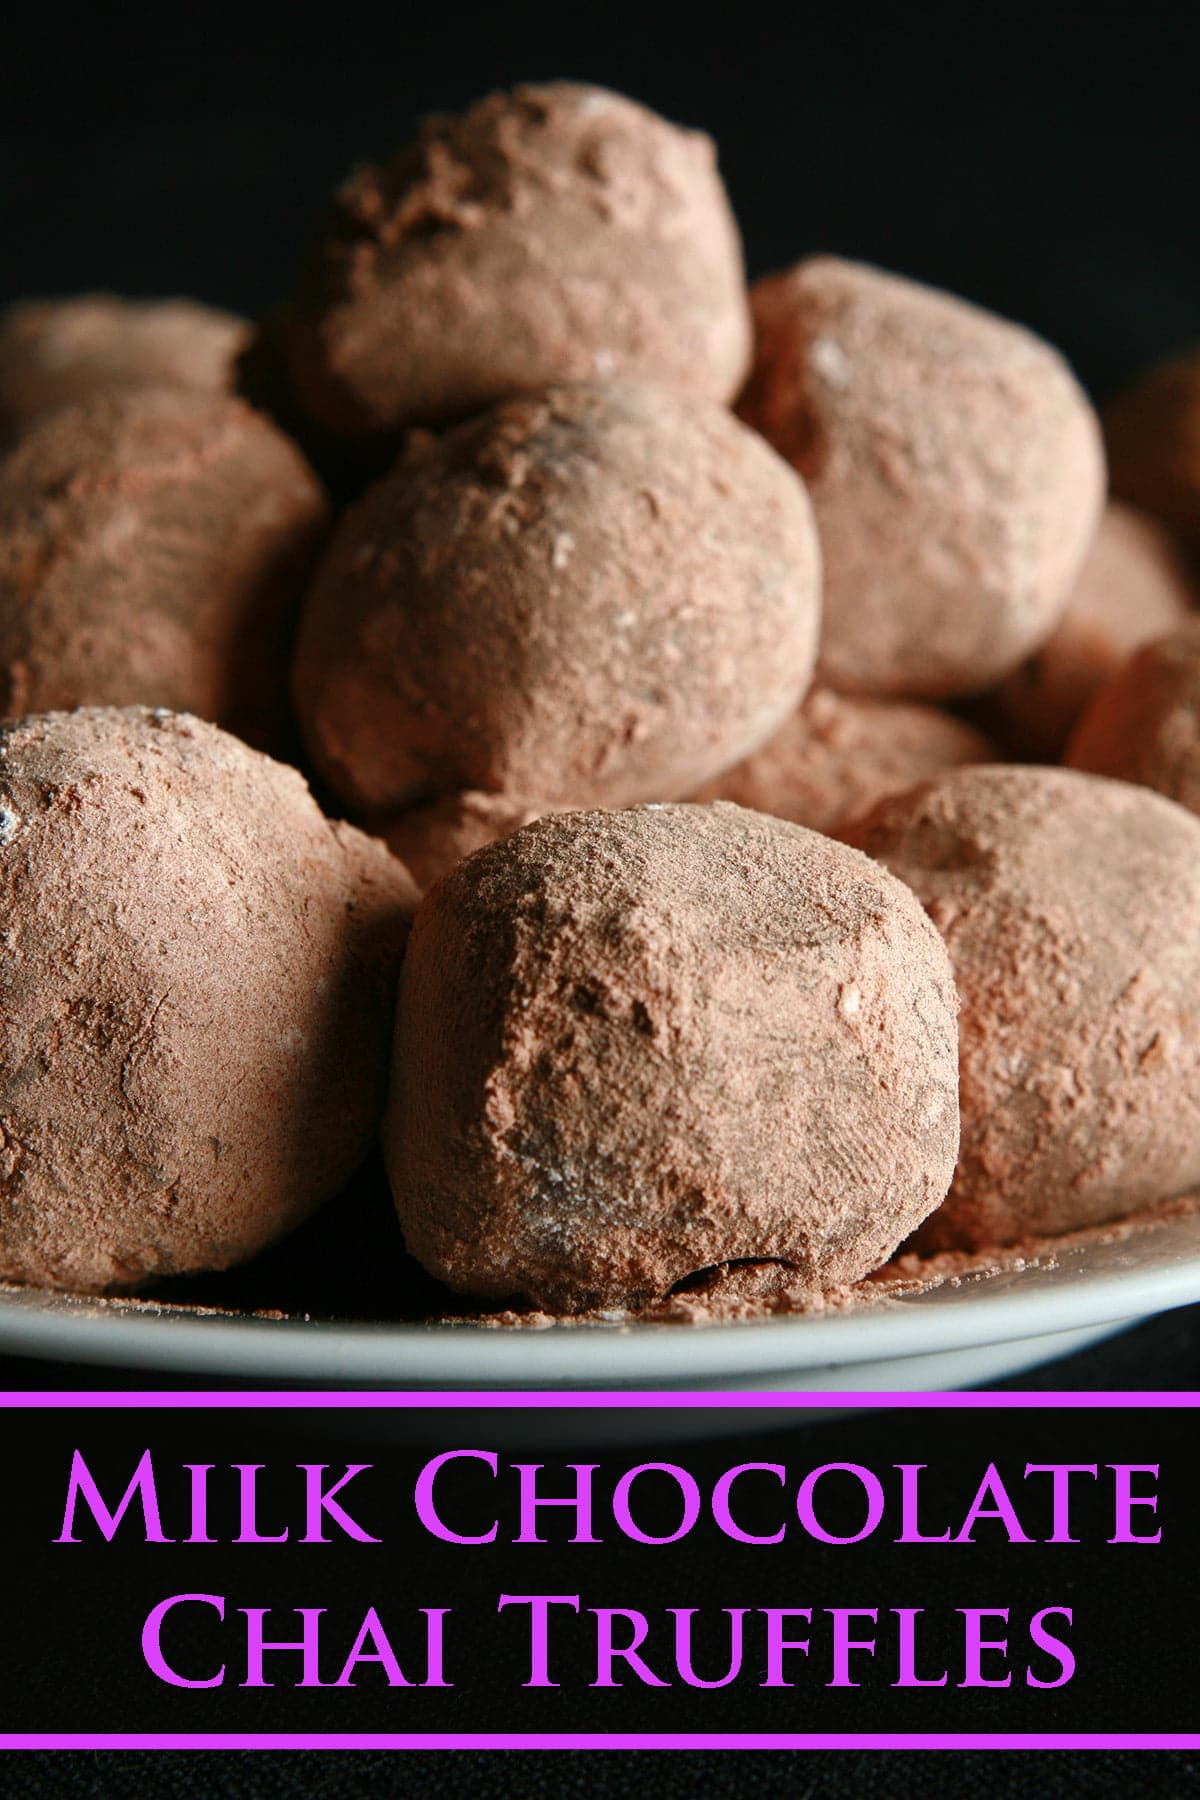 A small plate with a pile of cocoa-coated milk chocolate chai truffles.